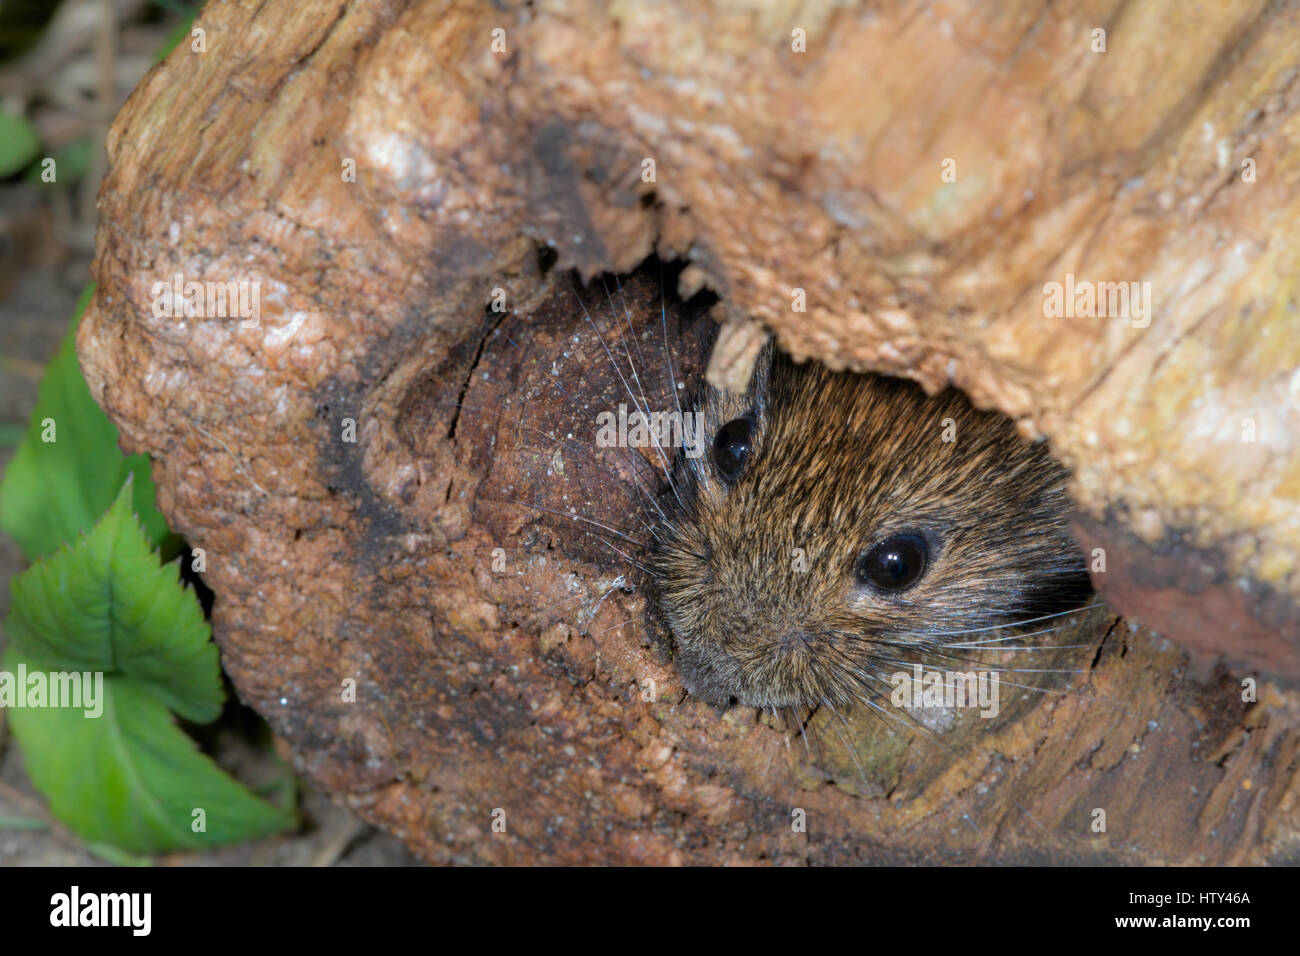 Bank Vole(Clethrionomys  glareolus) peering out of a hollow log in North Norfolk. - Stock Image